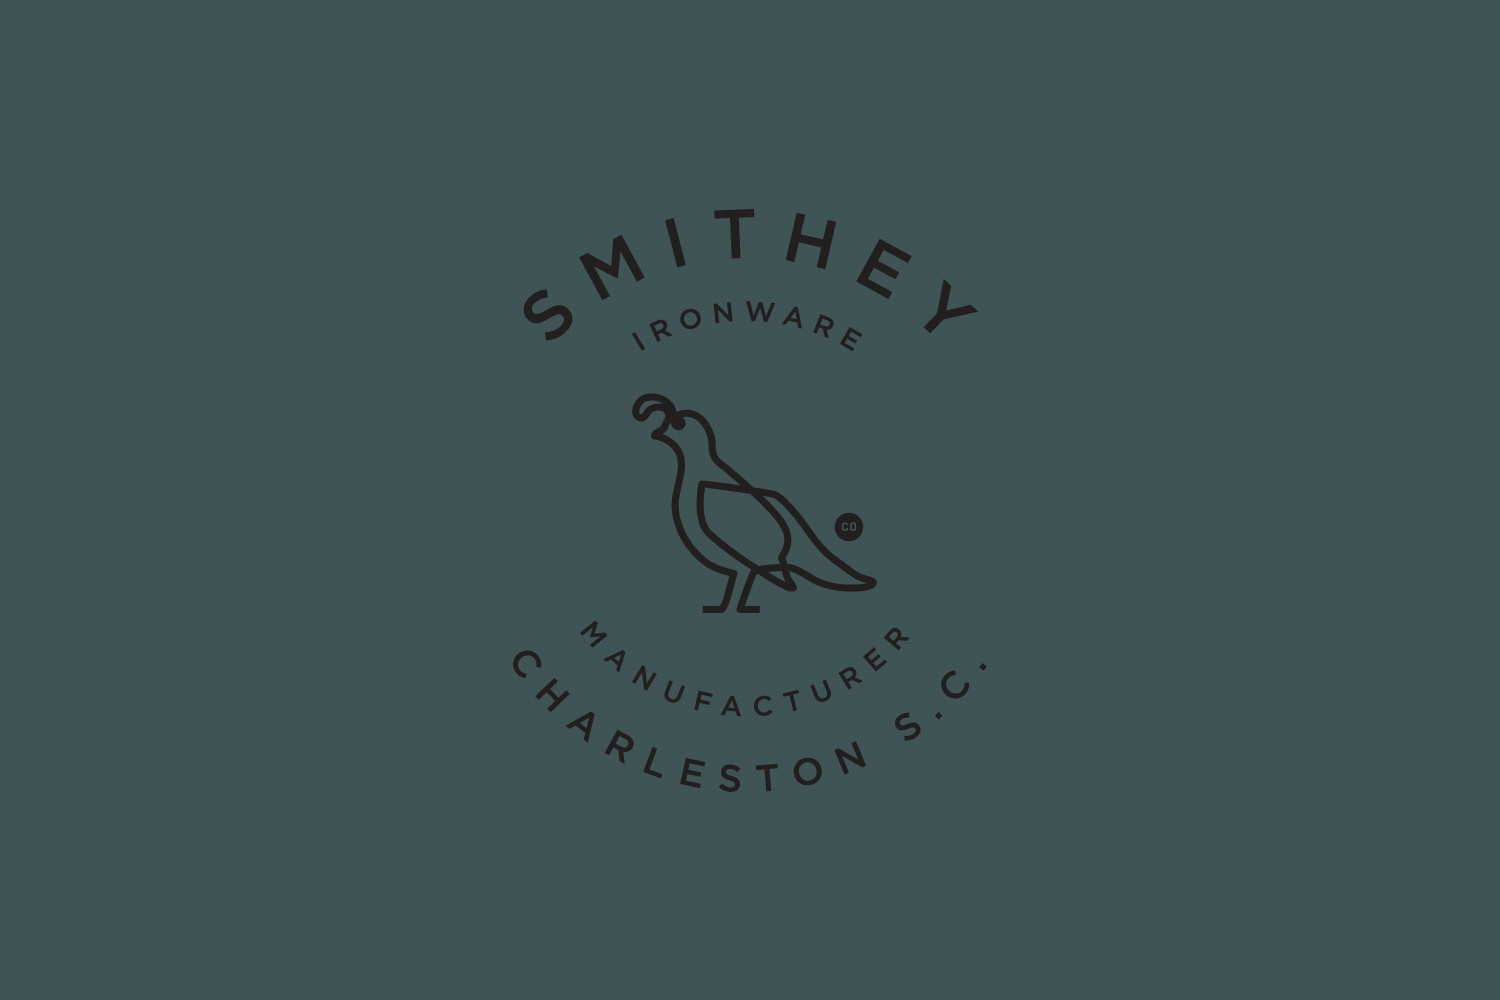 Brand identity and labels with white ink and blind emboss for Smithey Ironware Company by Charleston based Stitch, United States